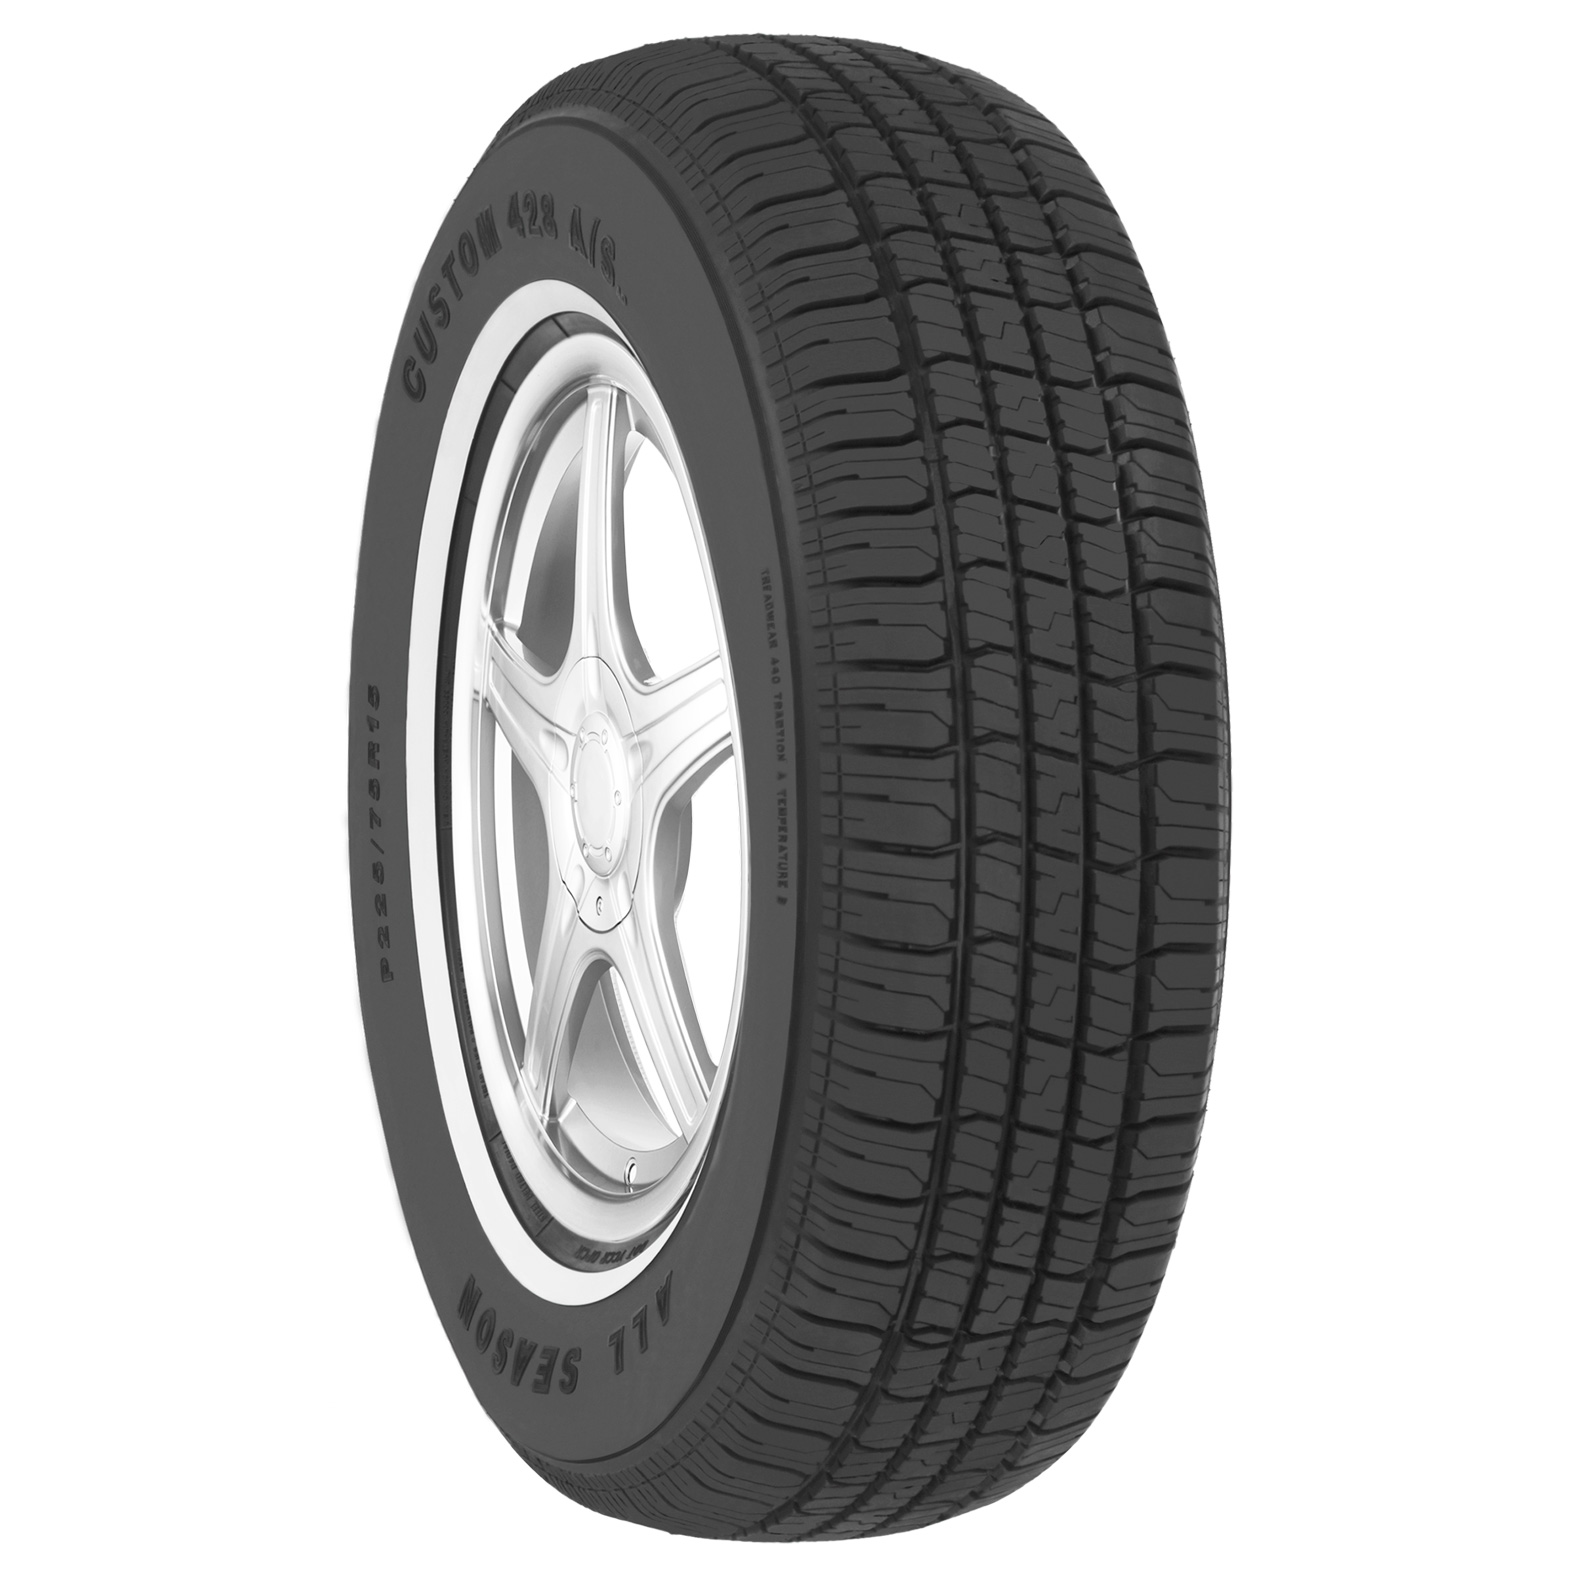 Multi-Mile Custom 428 A/S tire - angle